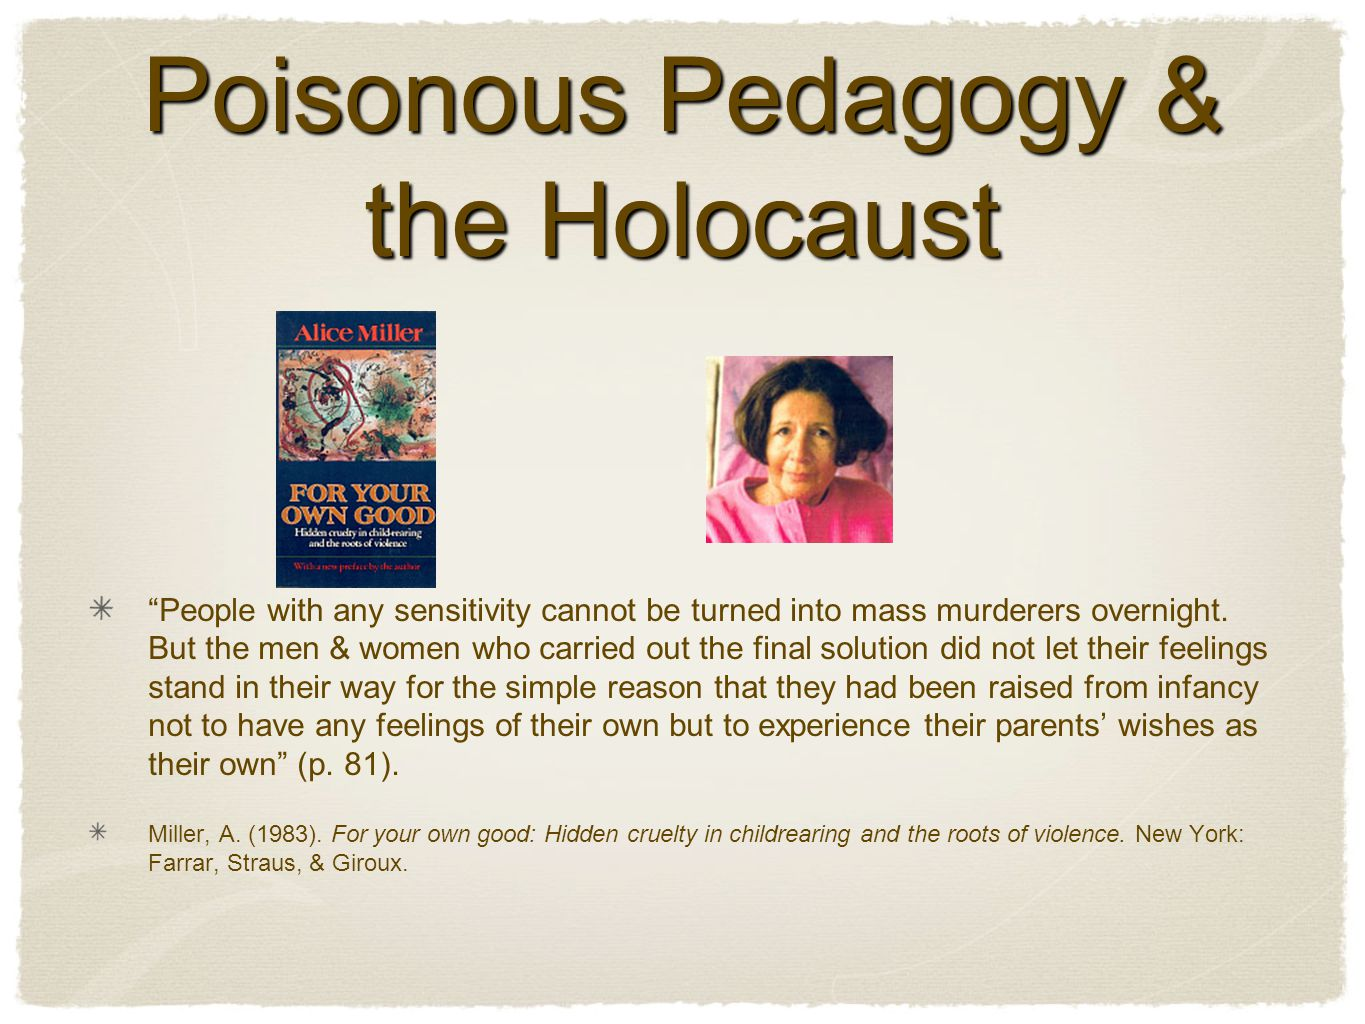 Poisonous Pedagogy & the Holocaust People with any sensitivity cannot be turned into mass murderers overnight.